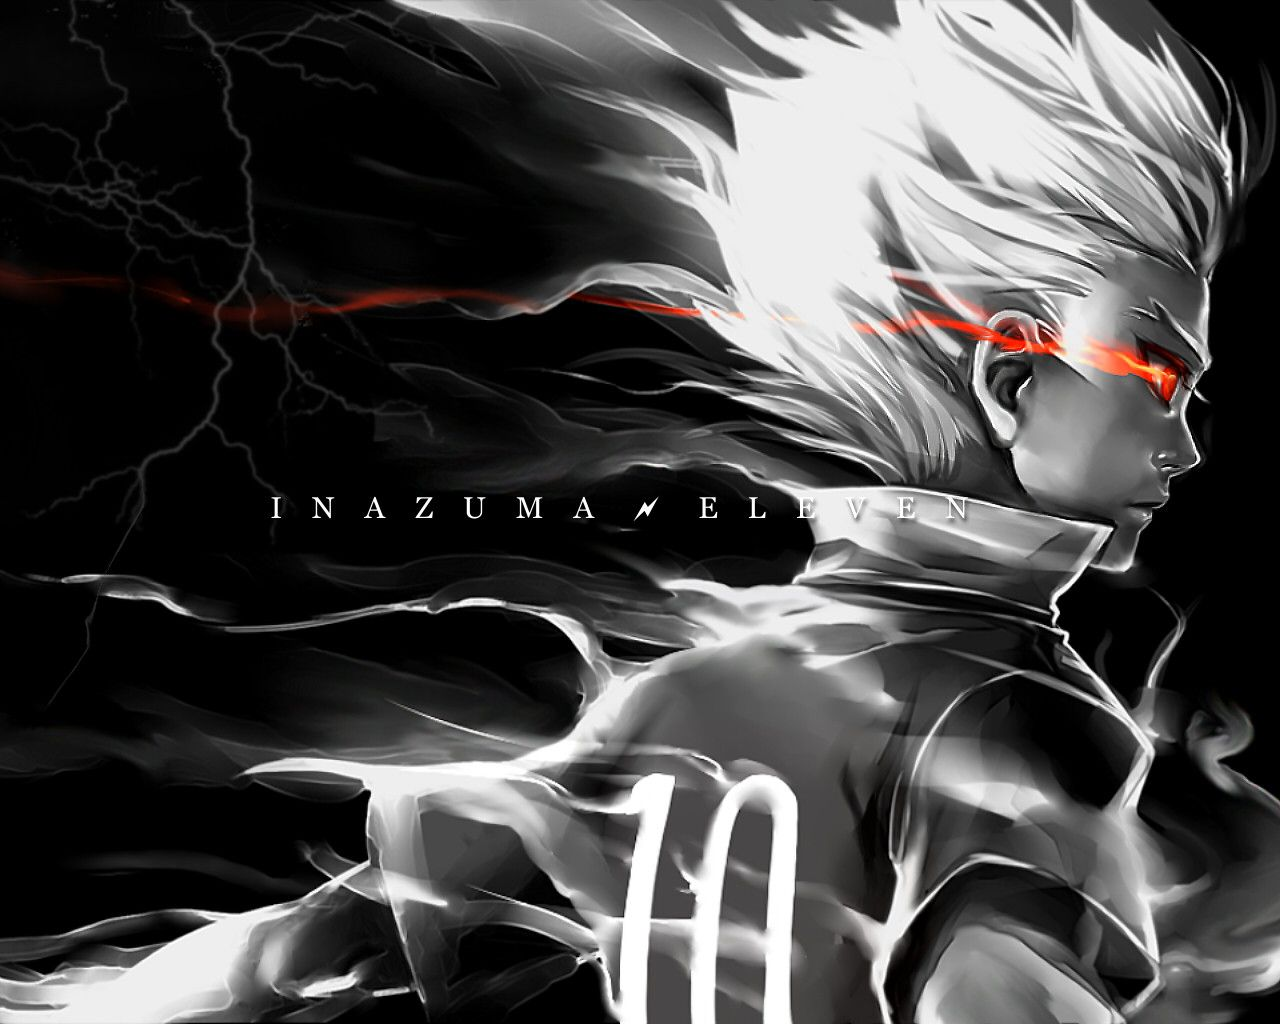 Inazuma Eleven HD Wallpapers These Wallpaper Backgrounds Are Free To Download And Available In High